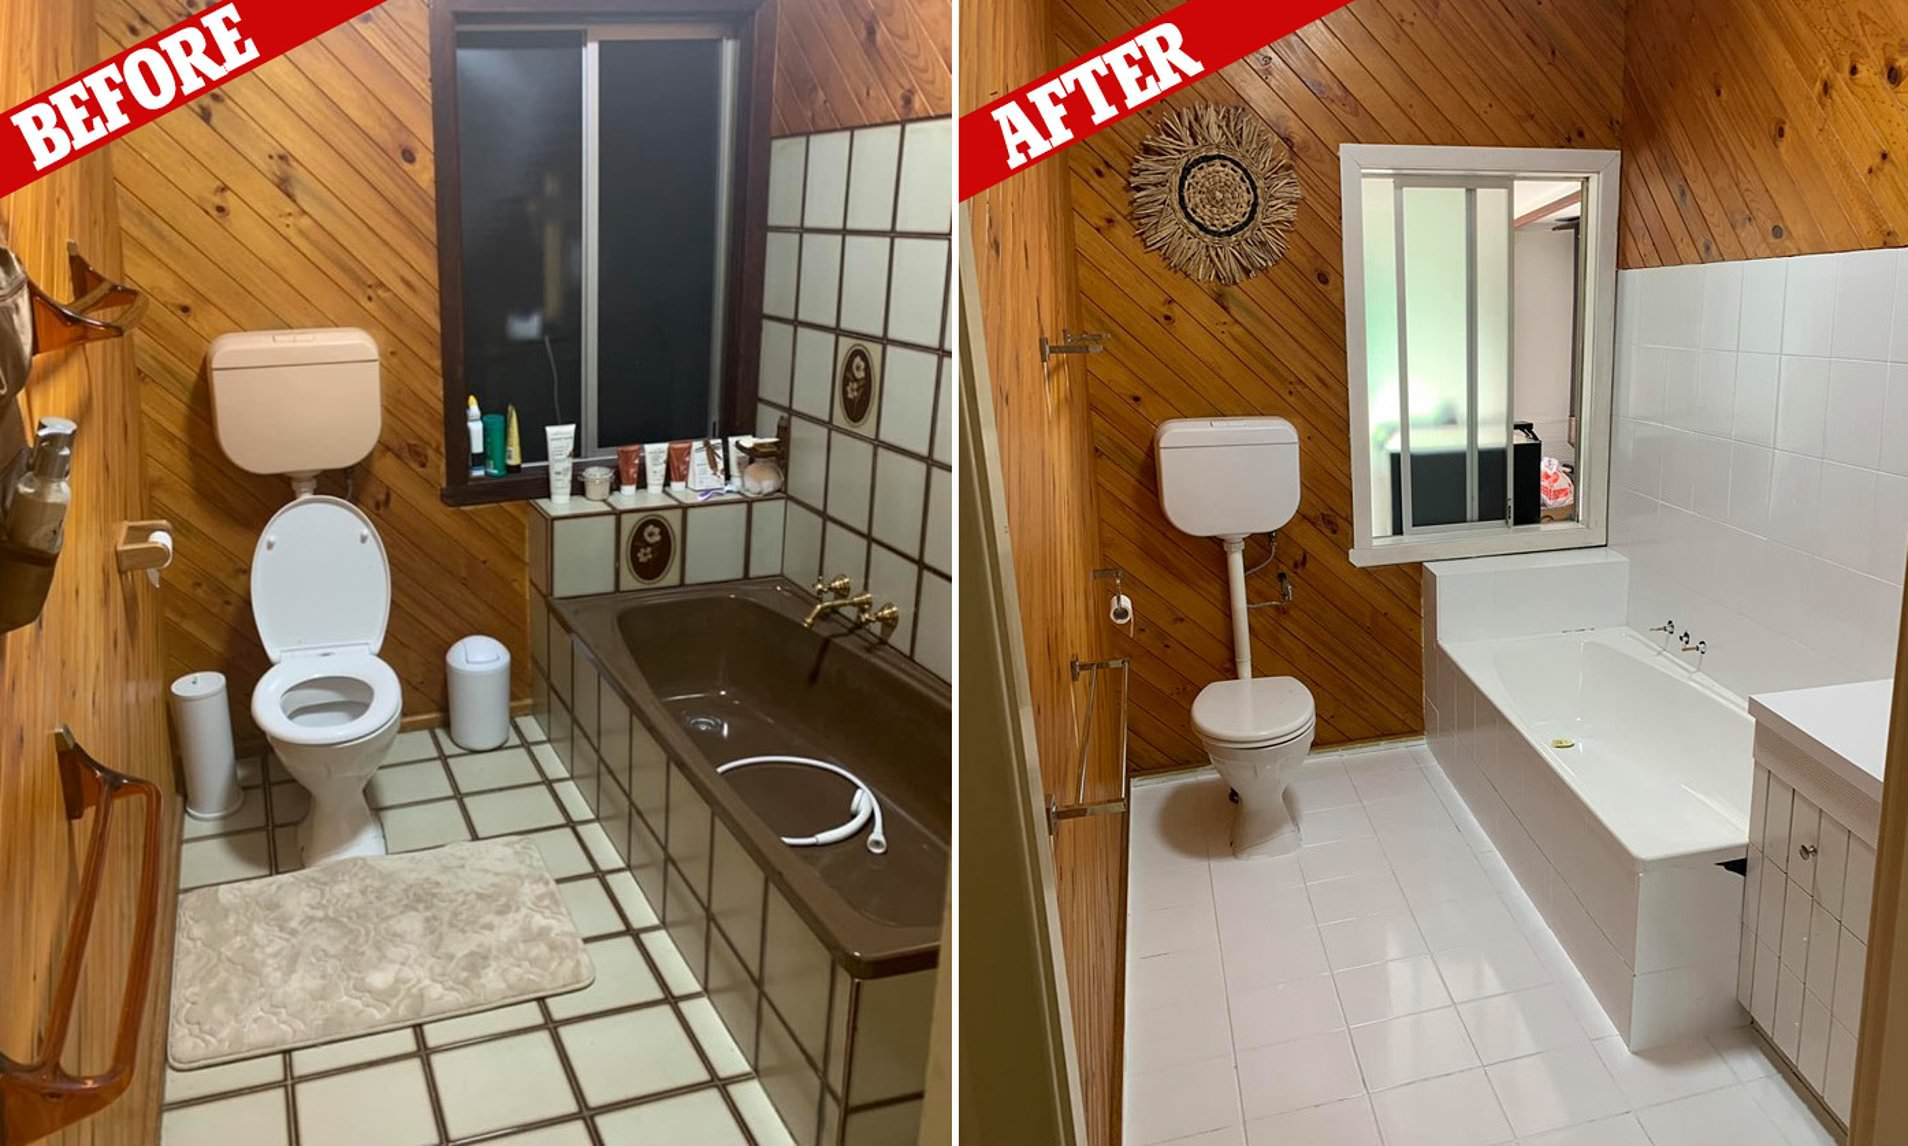 Woman Transforms Brown Bathroom With Two Tubs Of White Paint Daily Mail Online